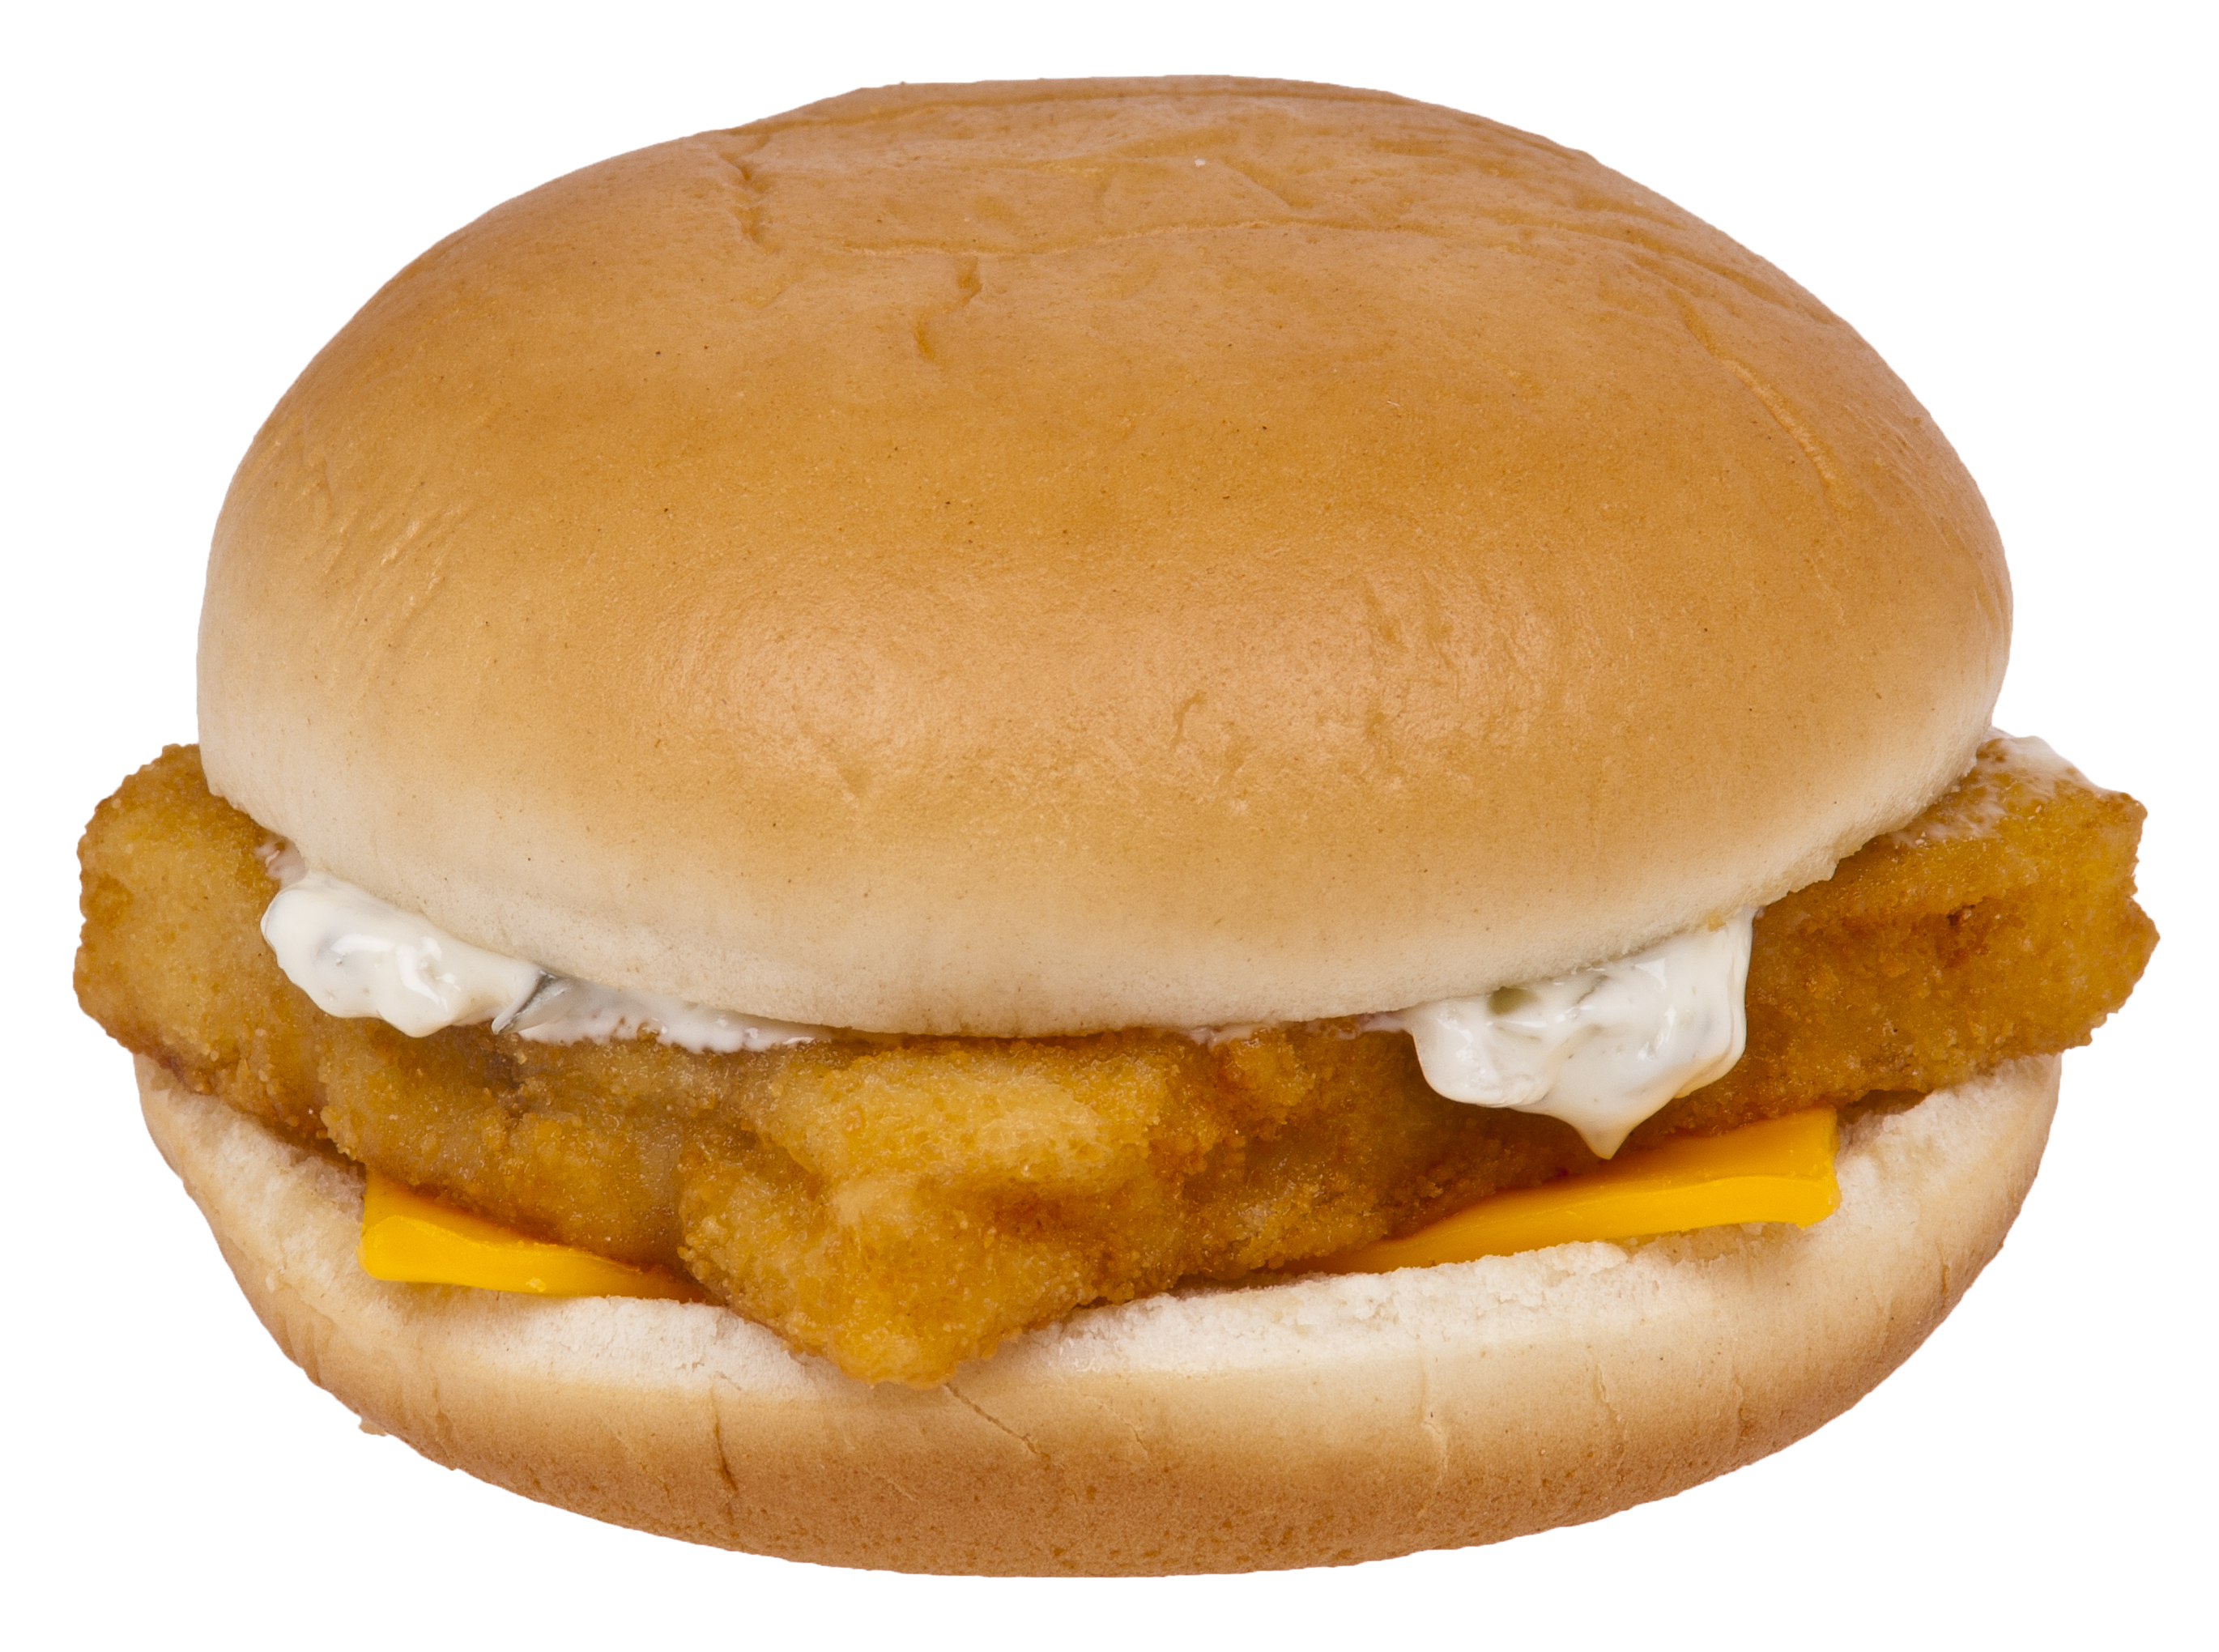 Fish fillet clipart picture royalty free stock File:Filet-O-Fish transparent.png - Wikipedia picture royalty free stock